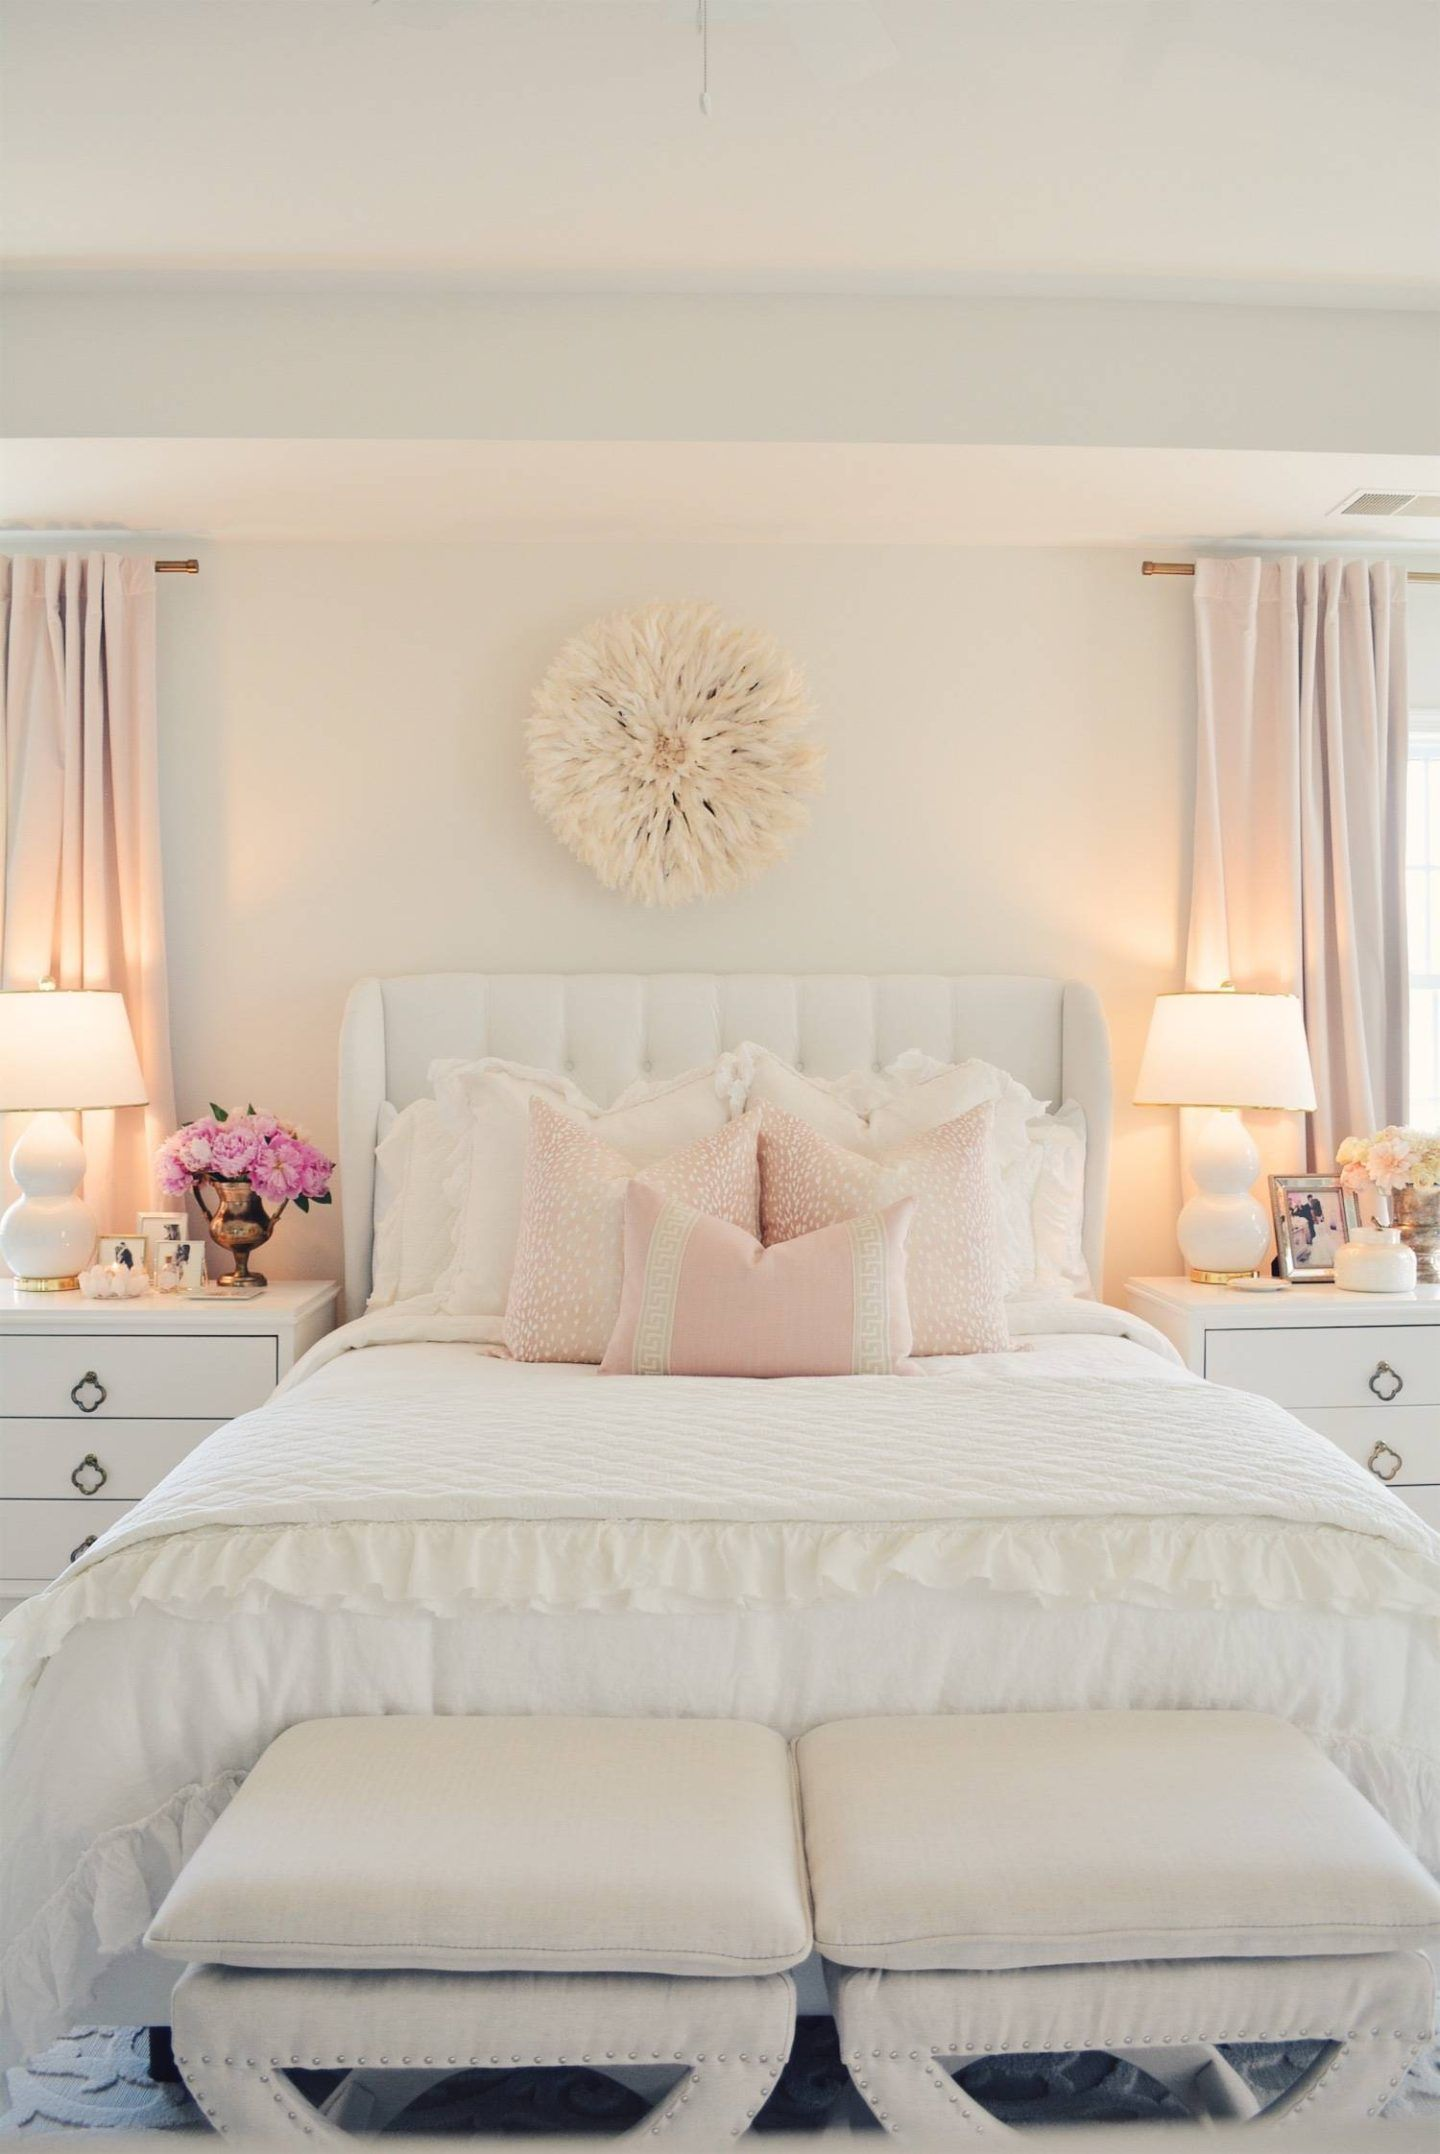 Best Elegant White Master Bedroom Blush Decorative Pillows 400 x 300